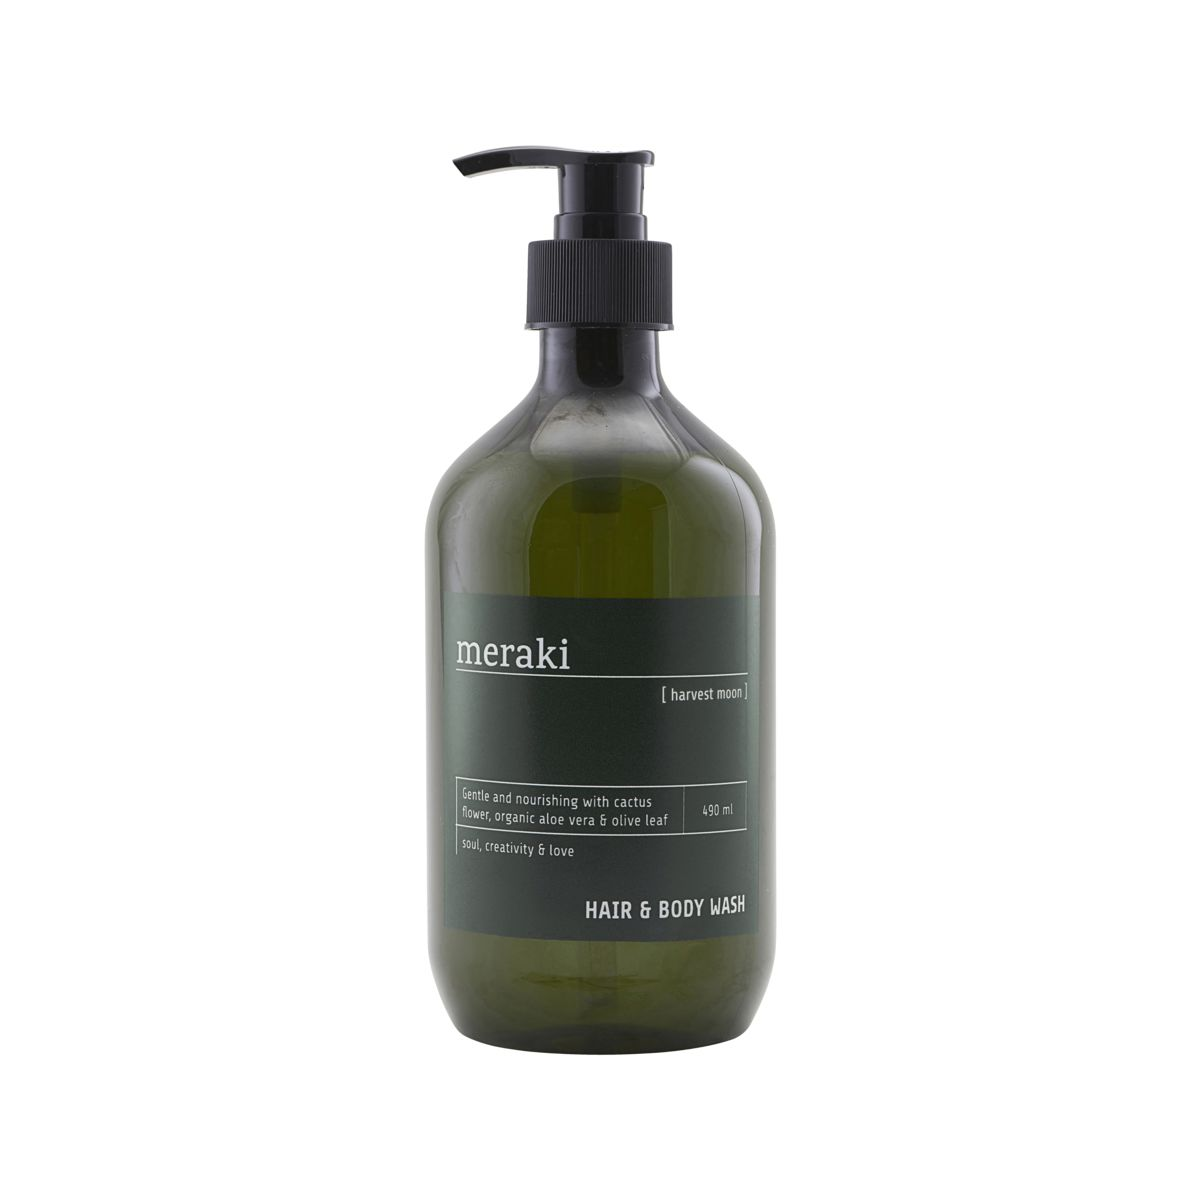 Meraki - Hair and Body - Harwest moon